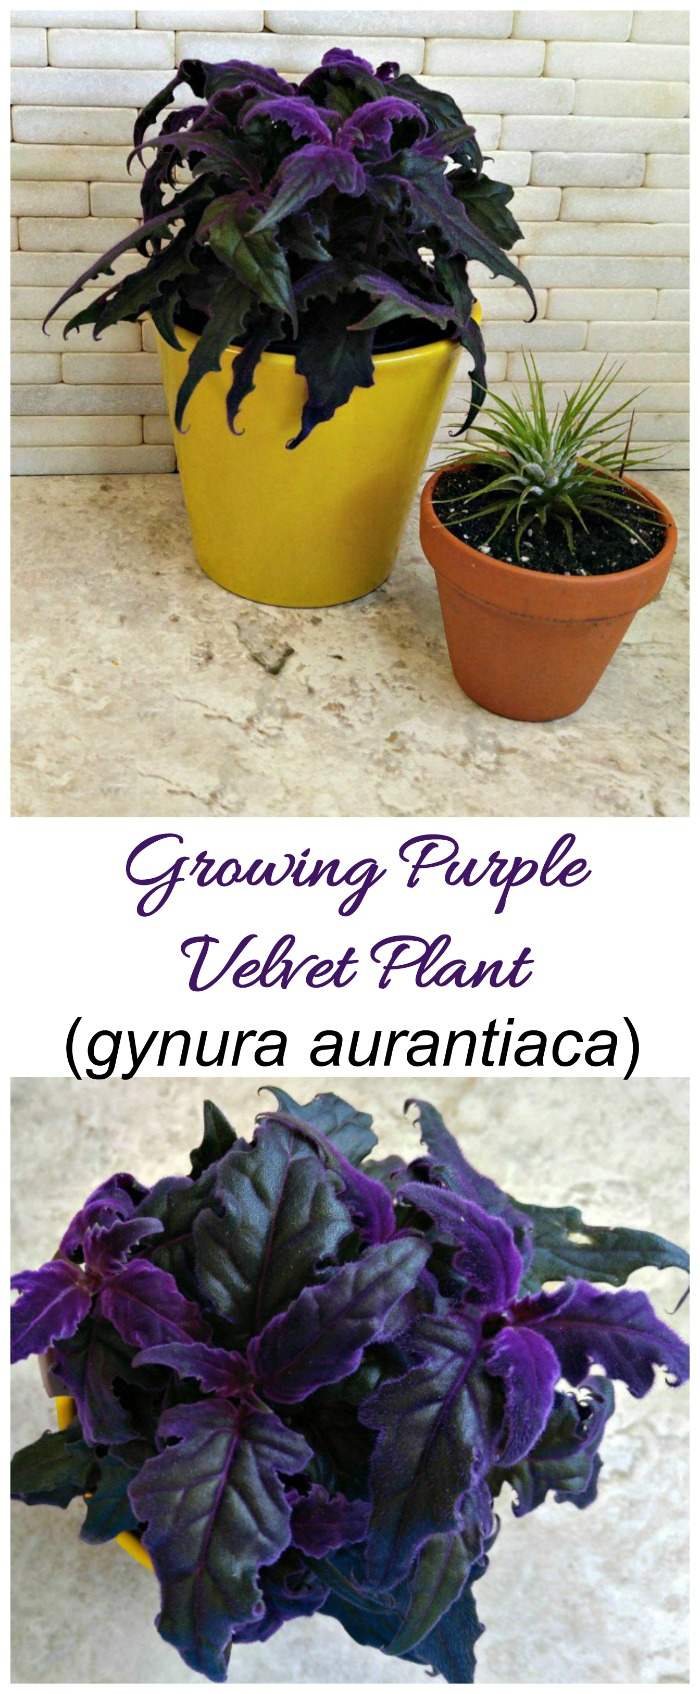 Purple velvet plant is a tropical houseplant from Java with velvety soft leaves in a bright purple color.